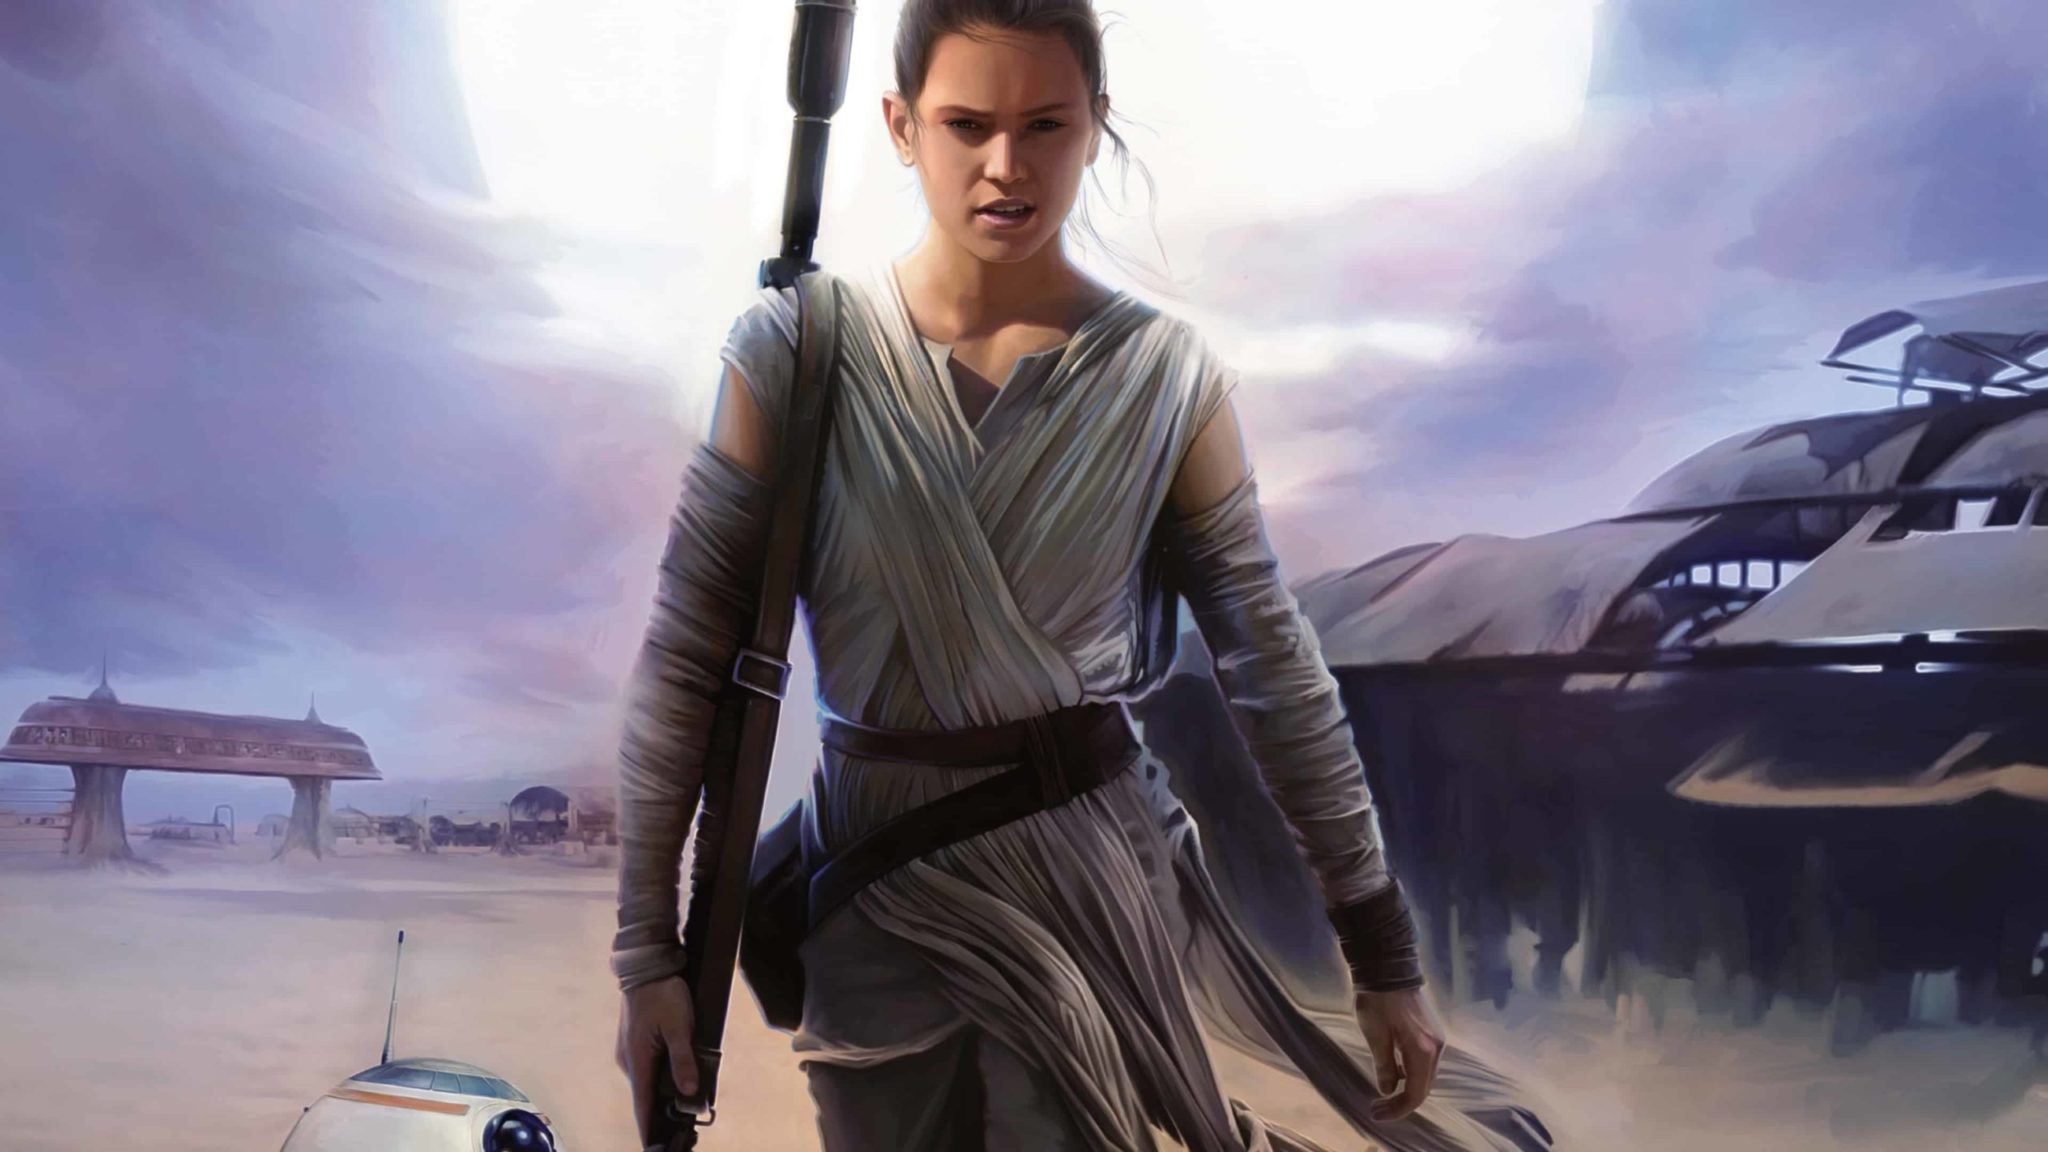 rey daisy ridley star wars el despertar de la fuerza the force awakens